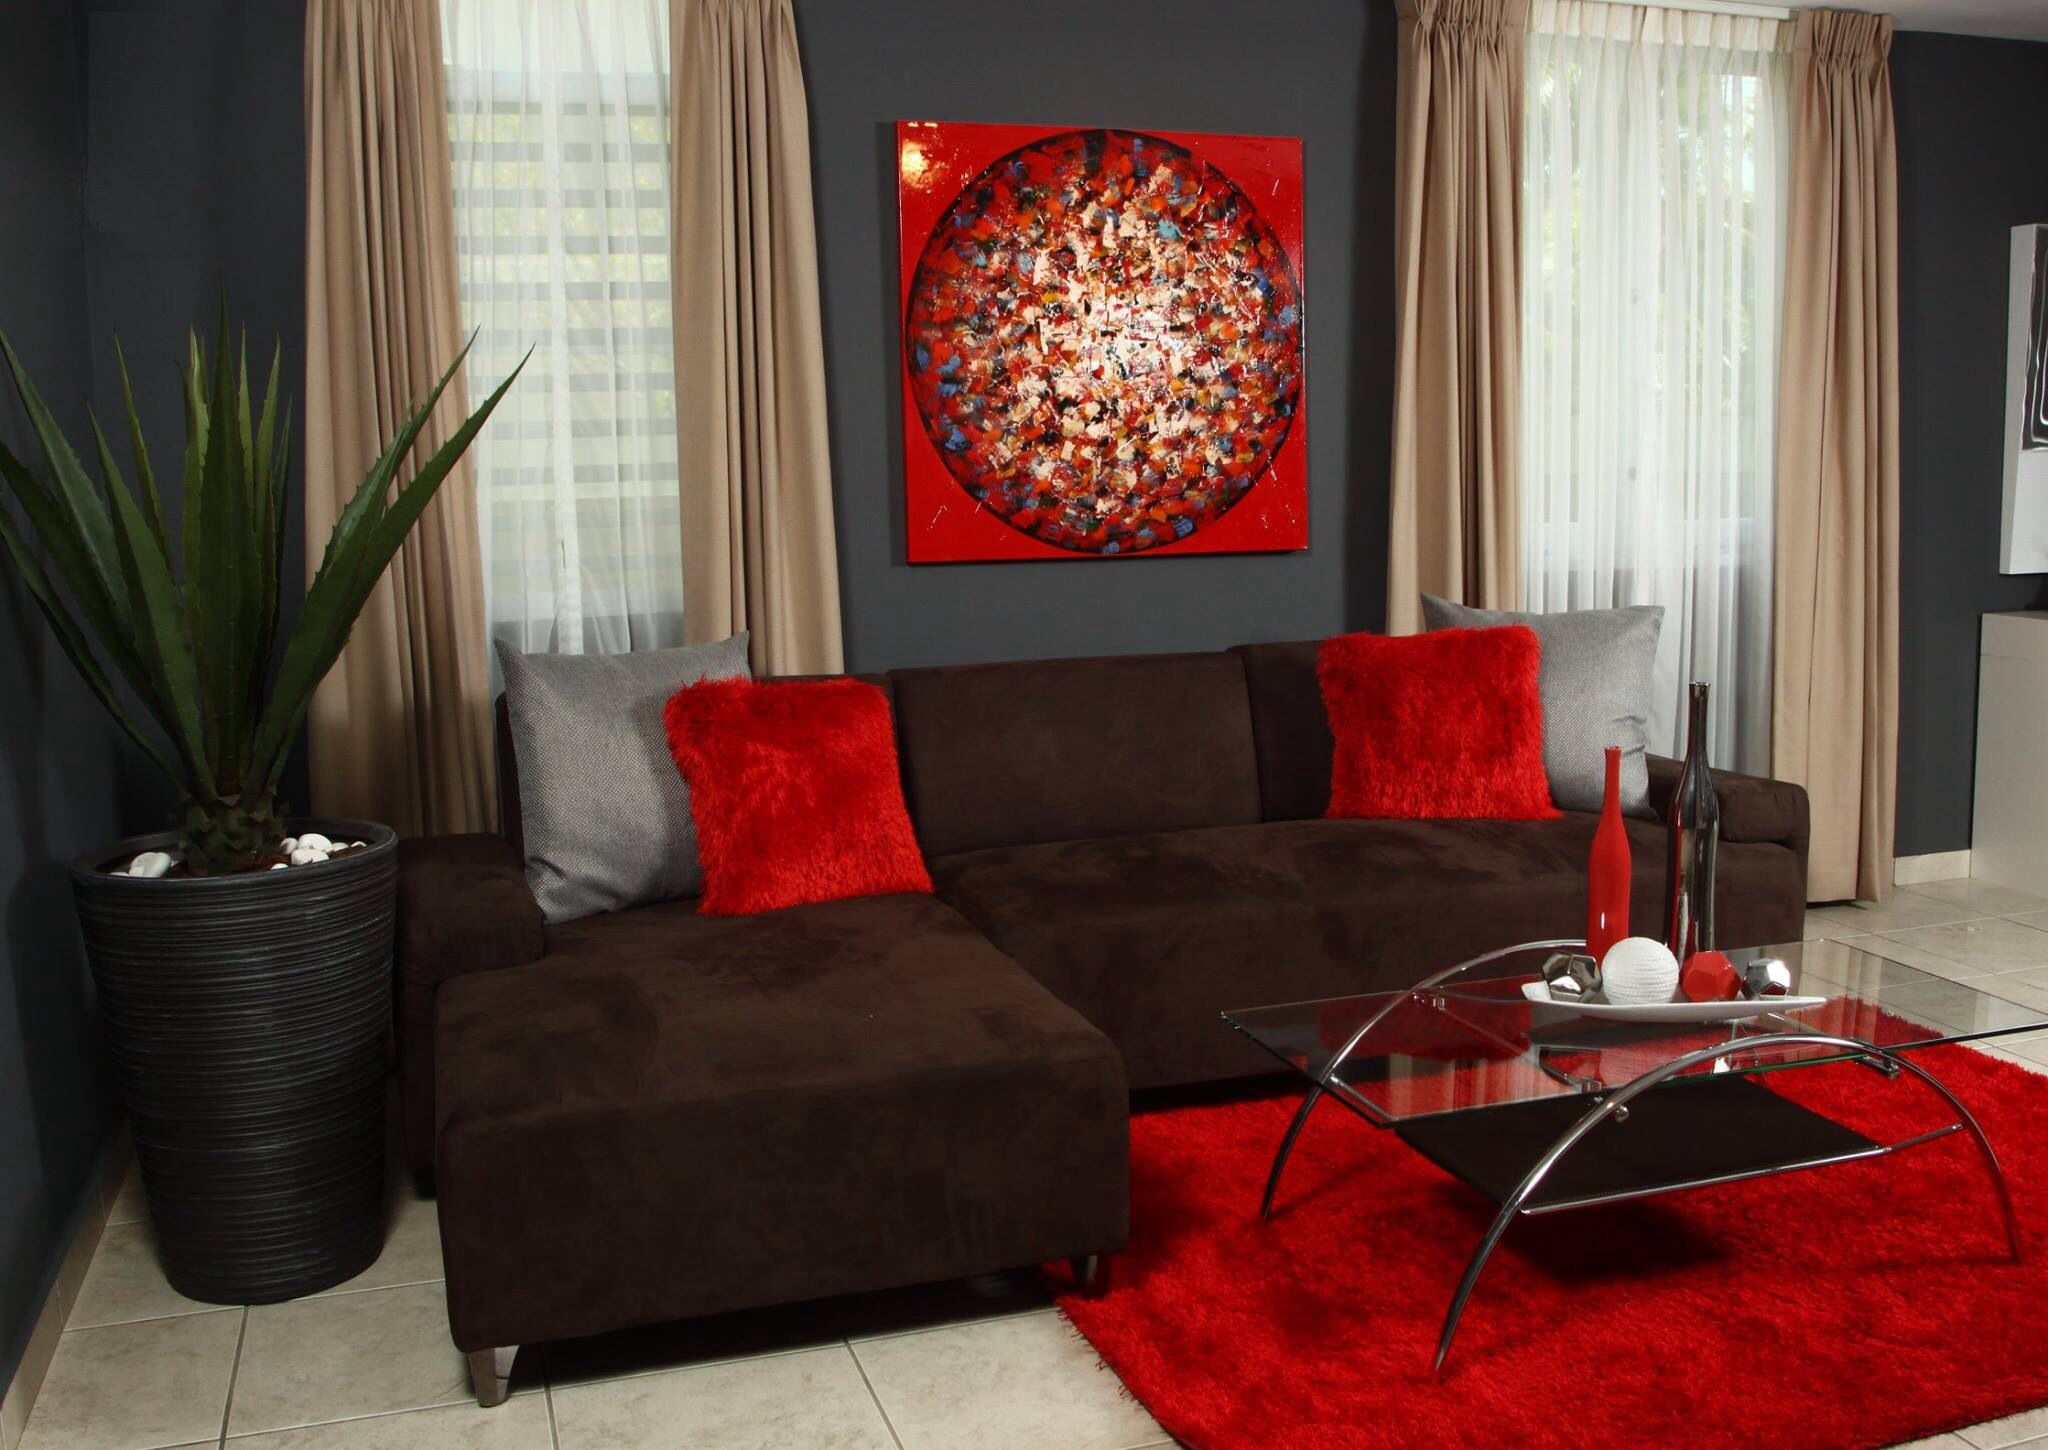 Red Decoration For Living Room Love It Https Www Facebook Shorthaircutstyles Posts 1760243427599430